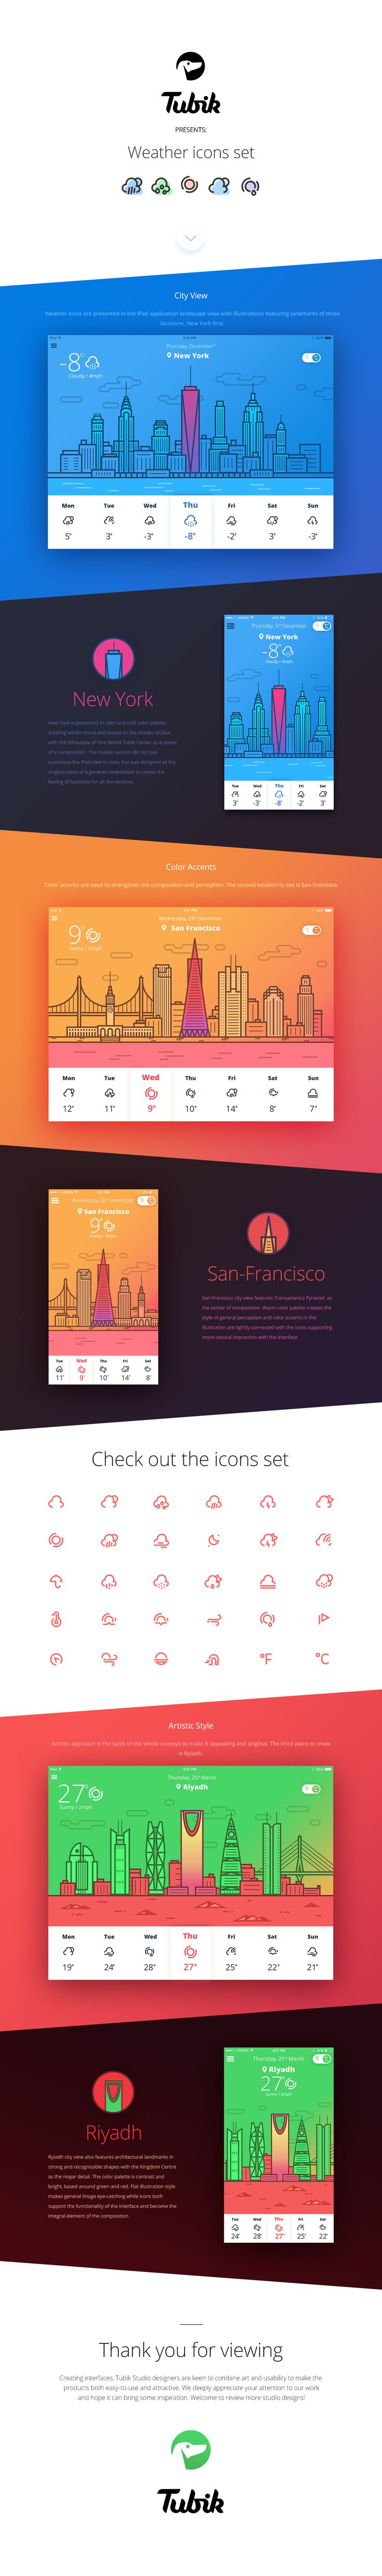 UI Inspiration: Layouts